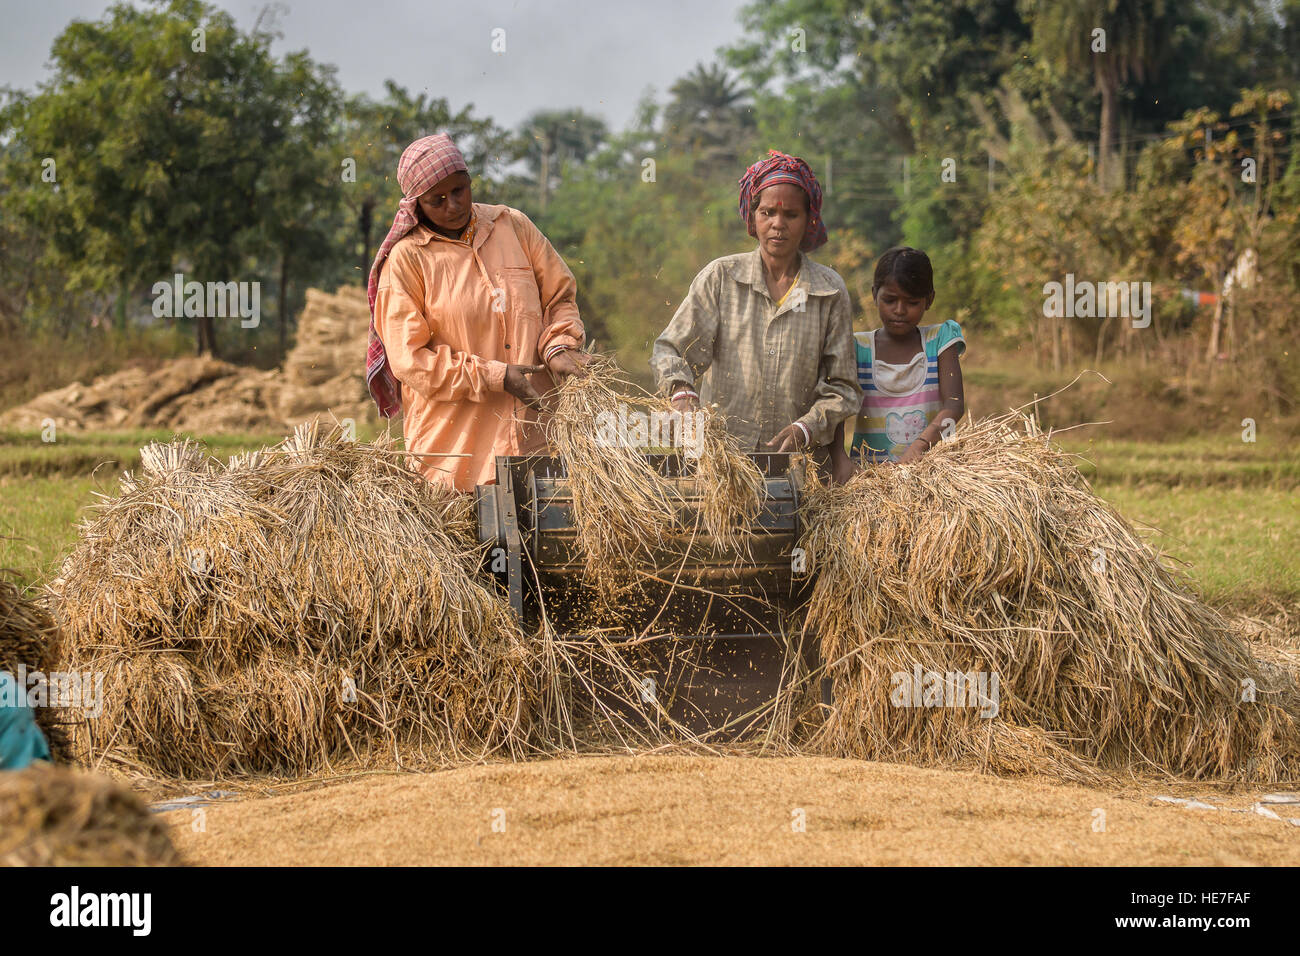 The villagers r hauling their harvested crops in the machine. - Stock Image